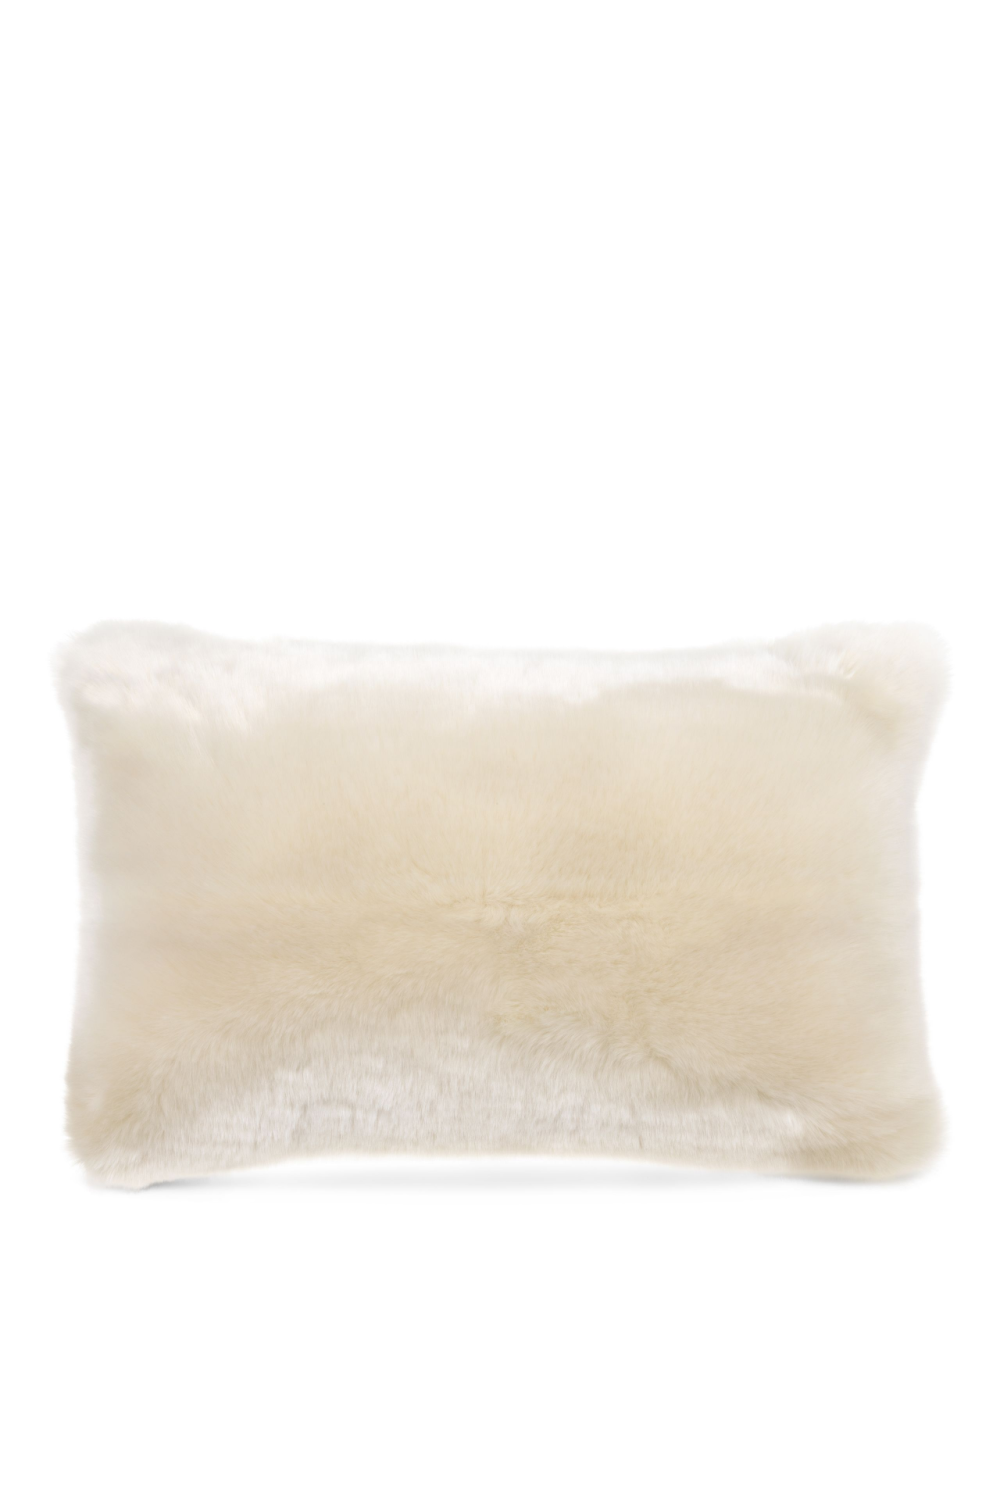 White Fur Cushion | Eichholtz Alaska | OROA - Luxury Decor